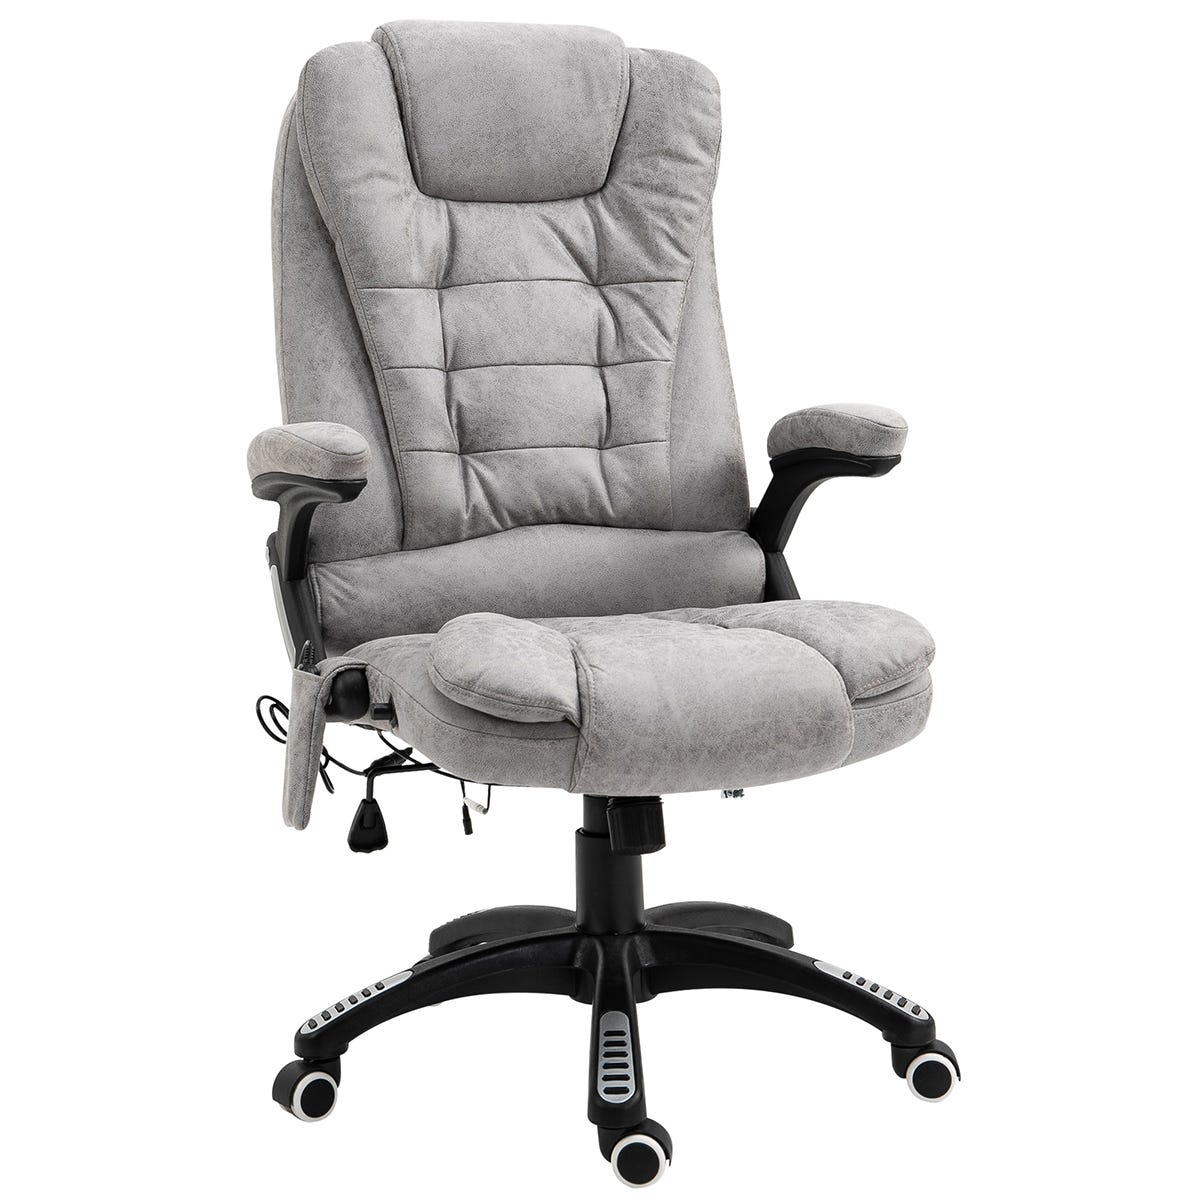 Solstice Daphne PU Leather Heated Massage Office Chair - Grey